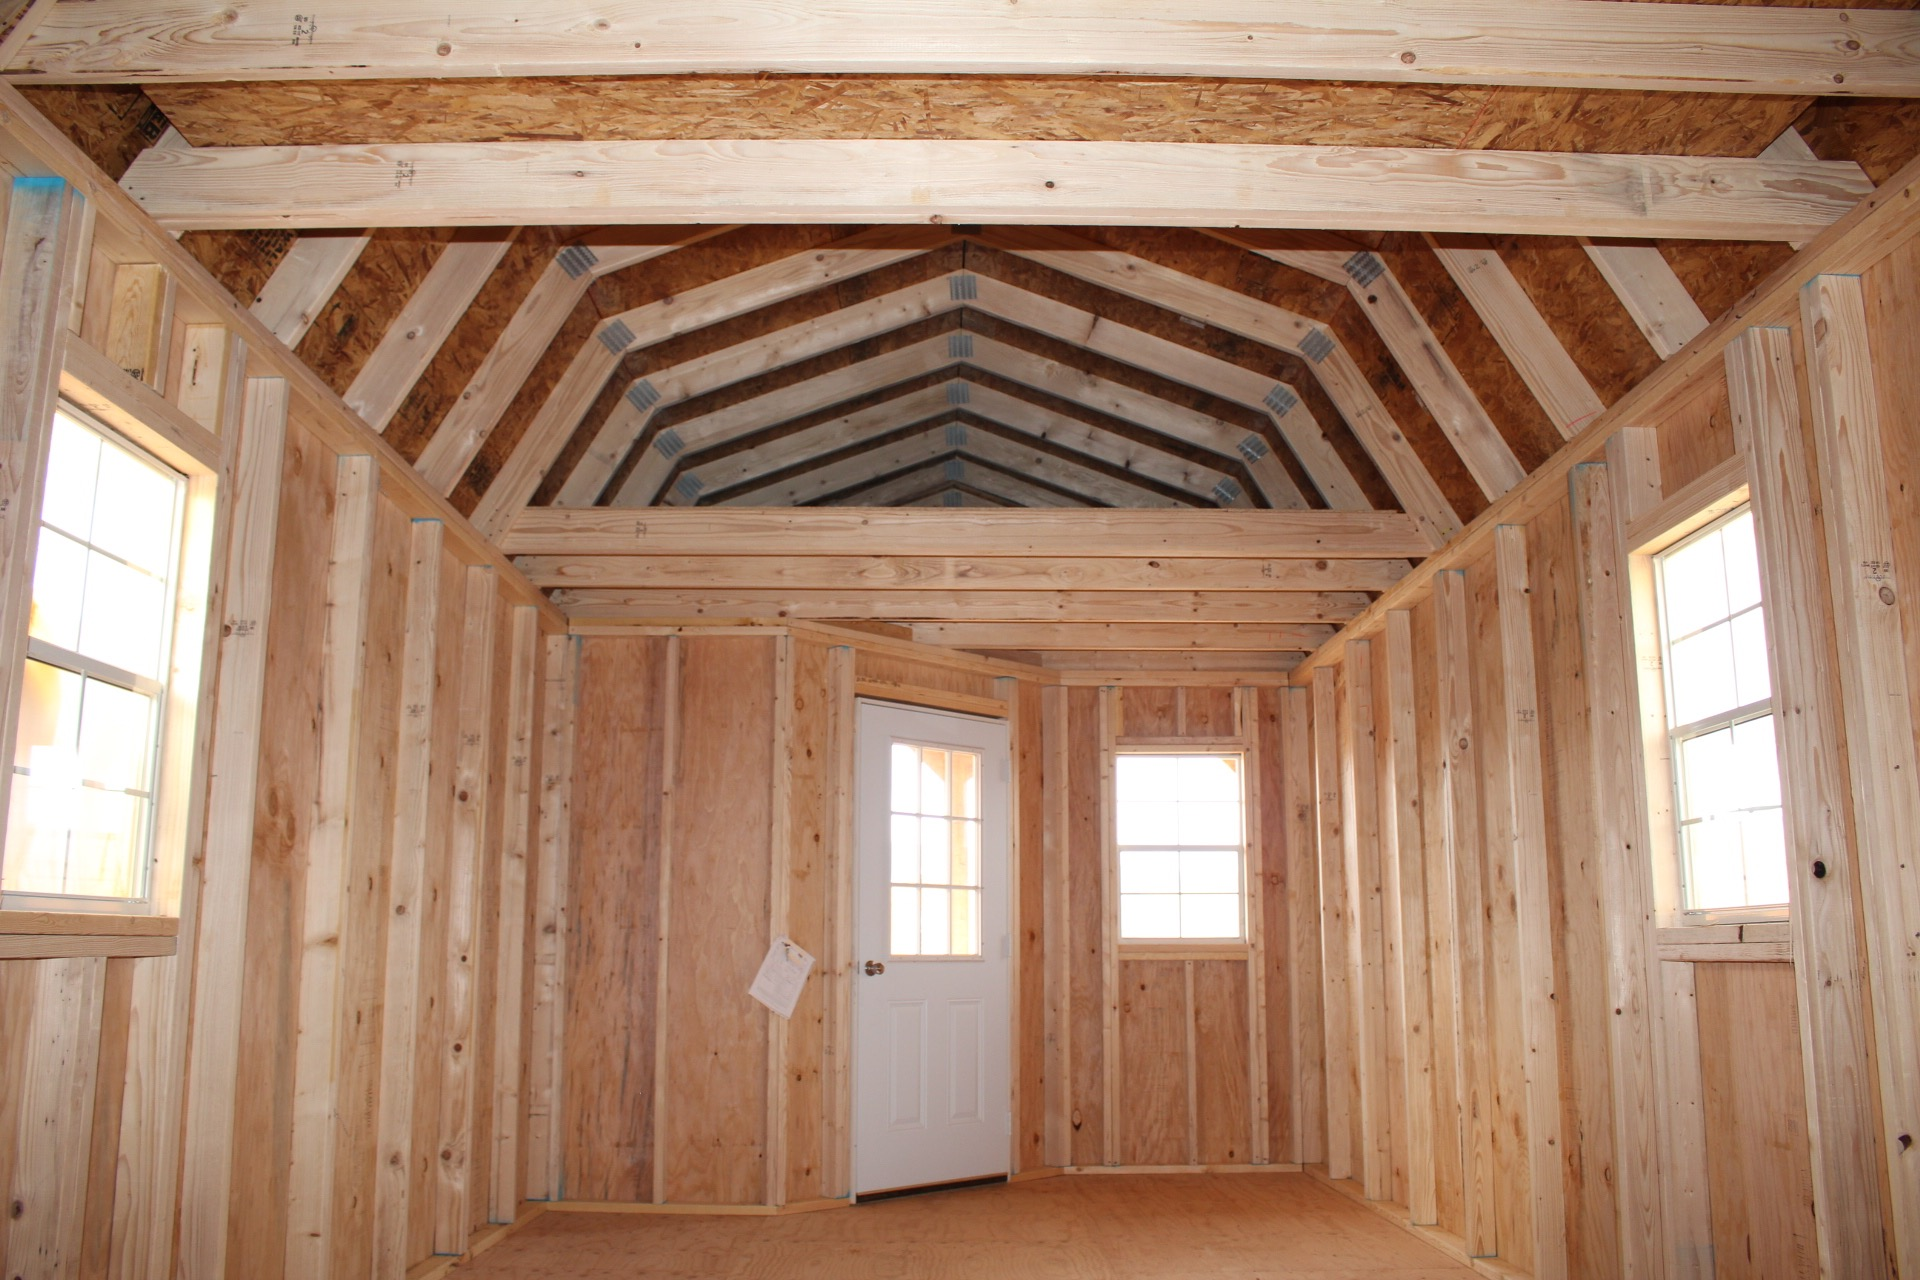 Each Deluxe Lofted Barn Cabin comes with 2 loft spaces!